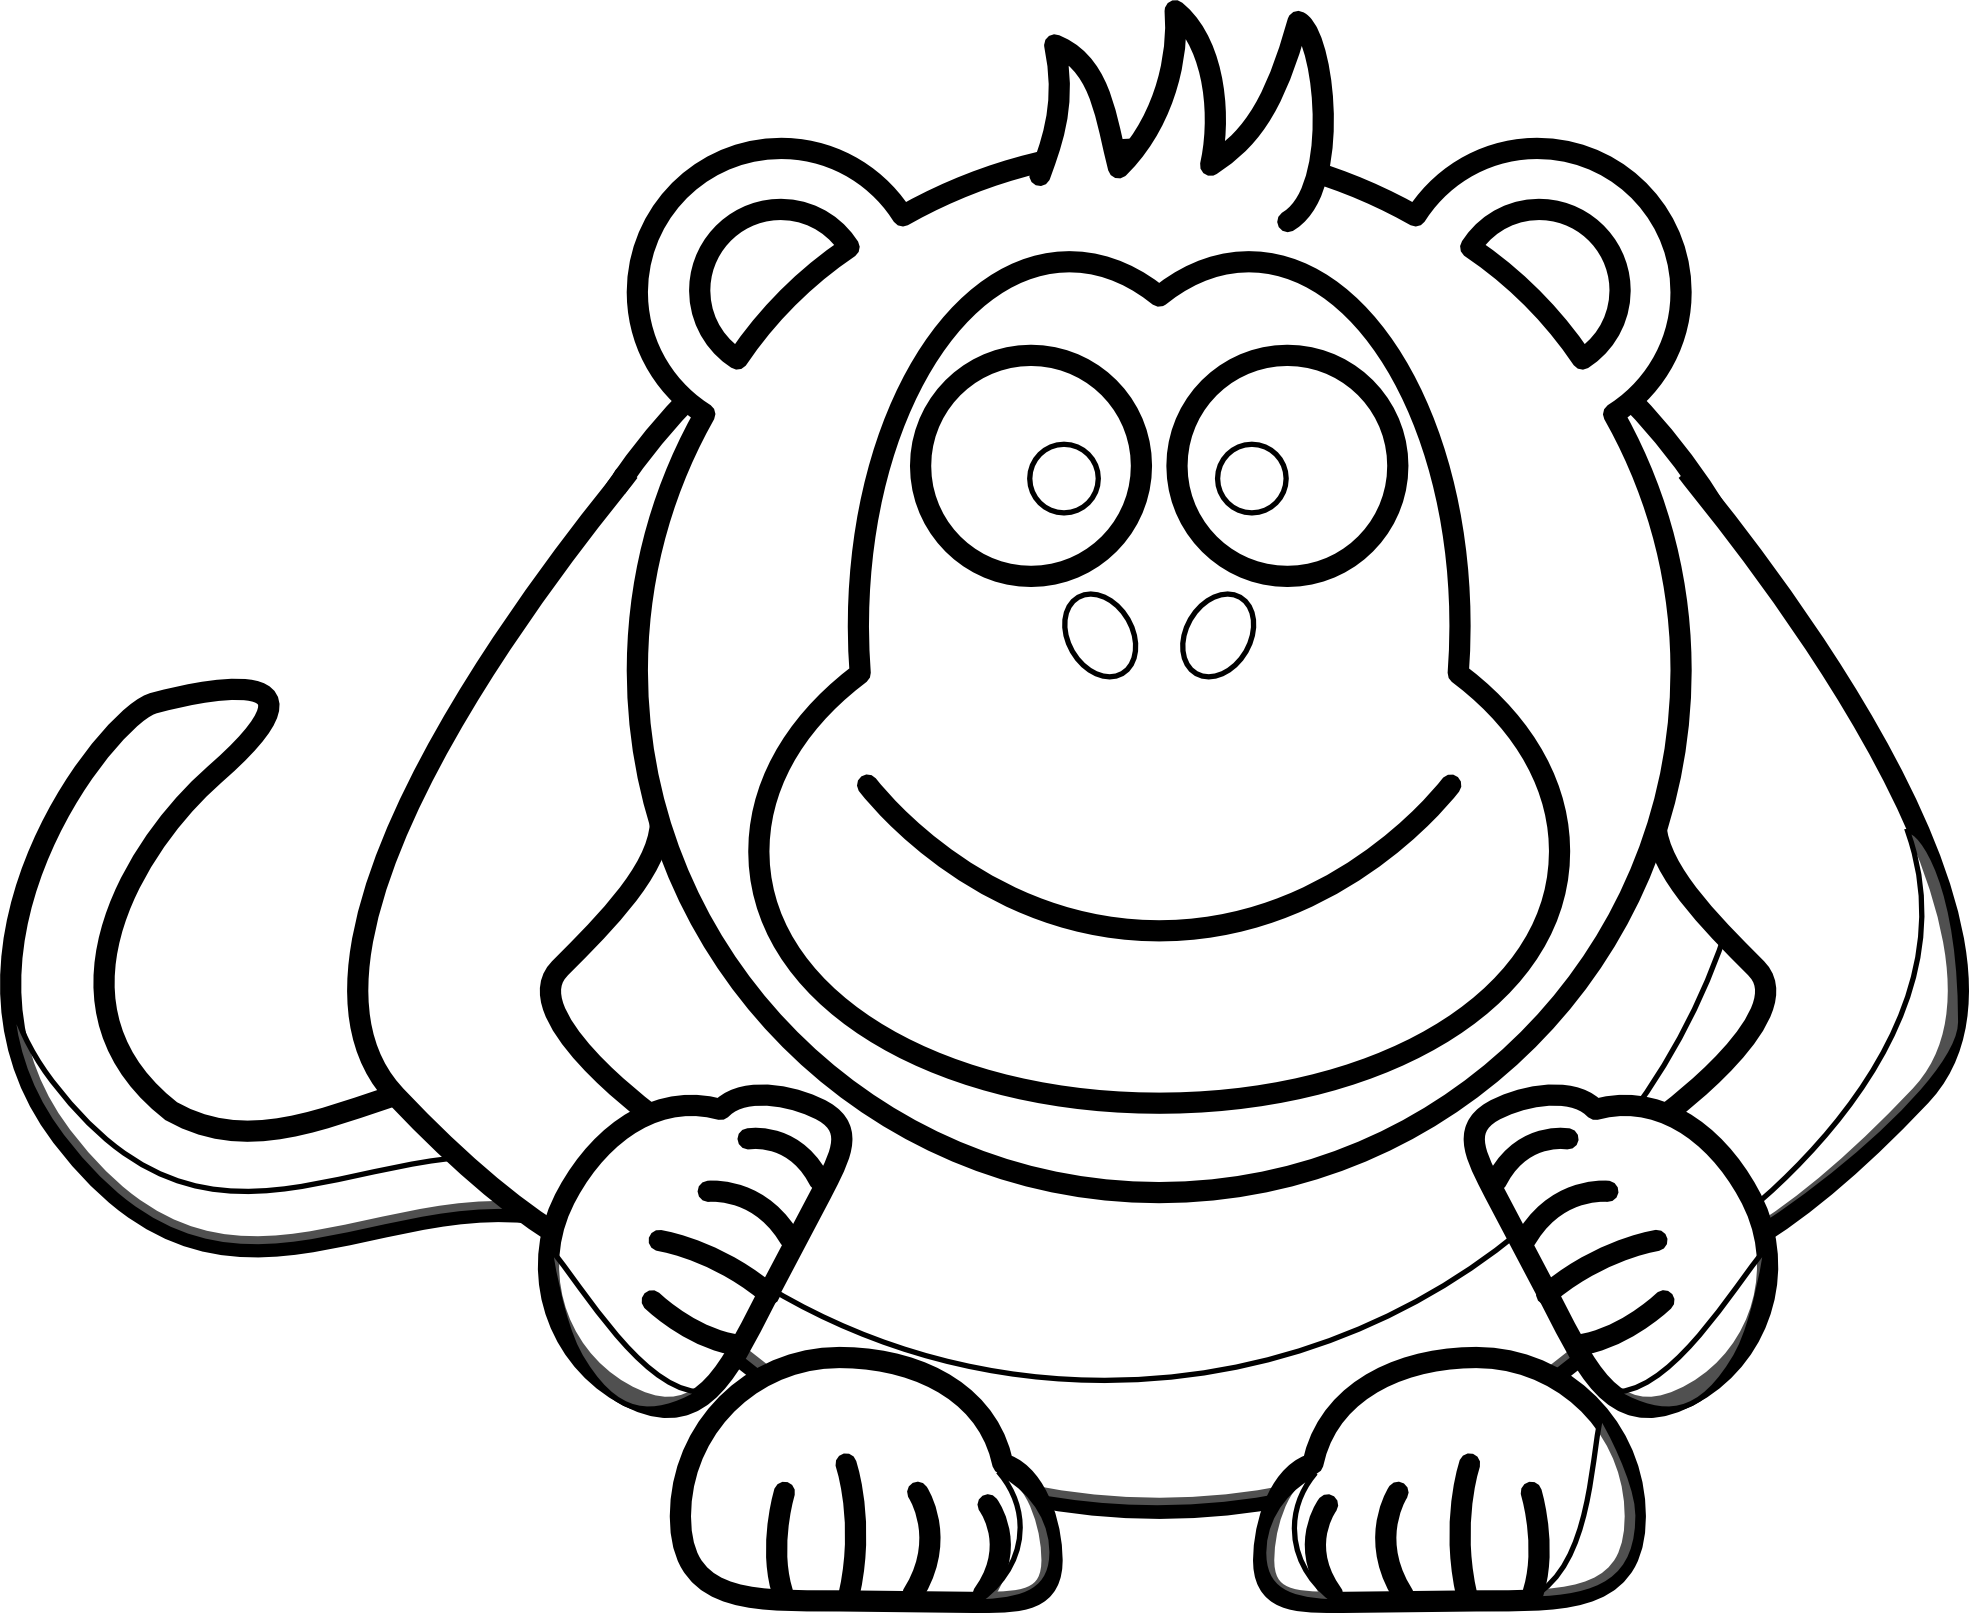 clip freeuse download Monkey Clip Art Black And White